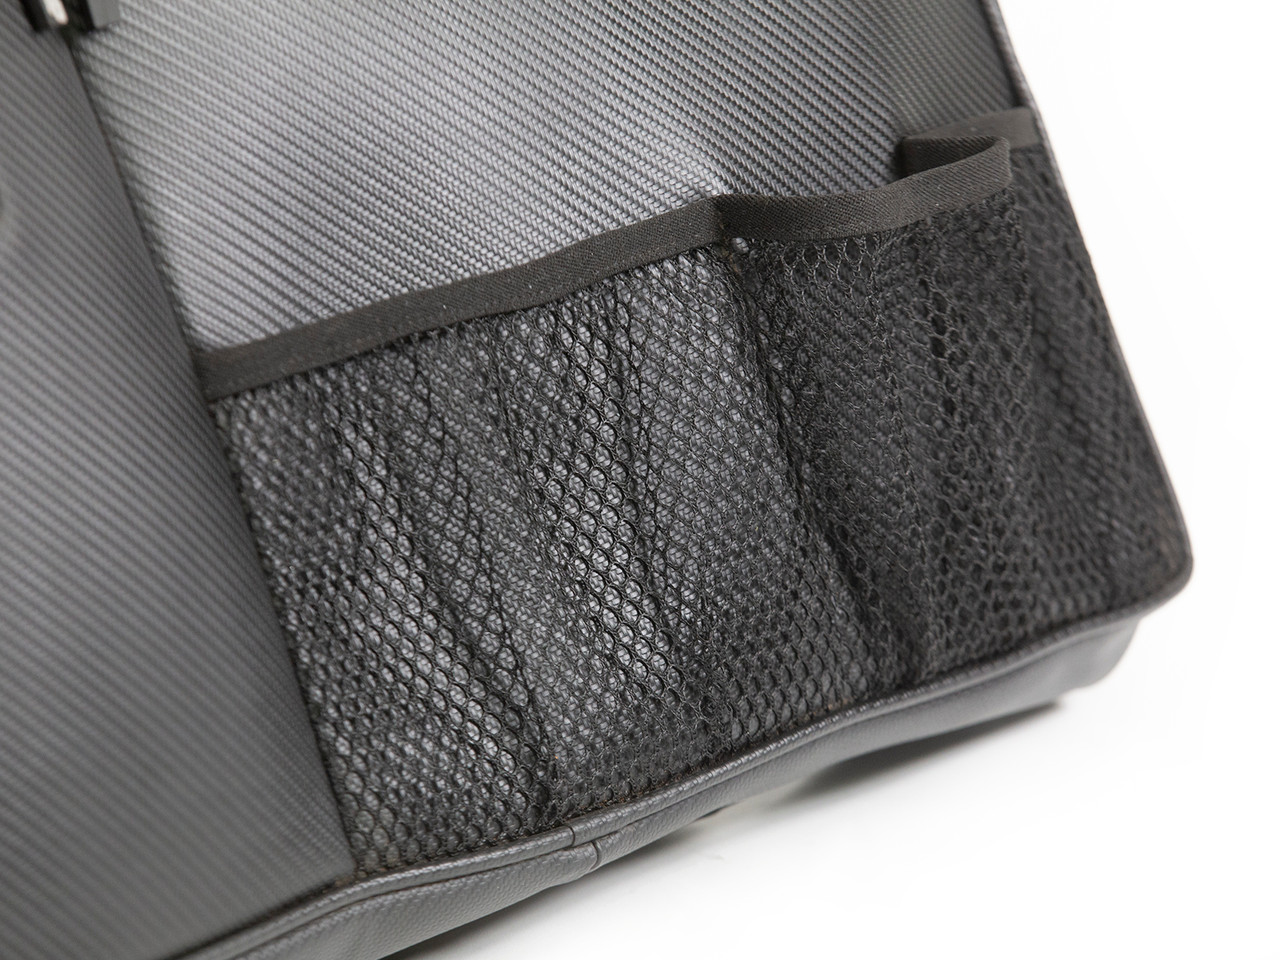 Mesh pockets to hold water bottles and other easy to access accessories